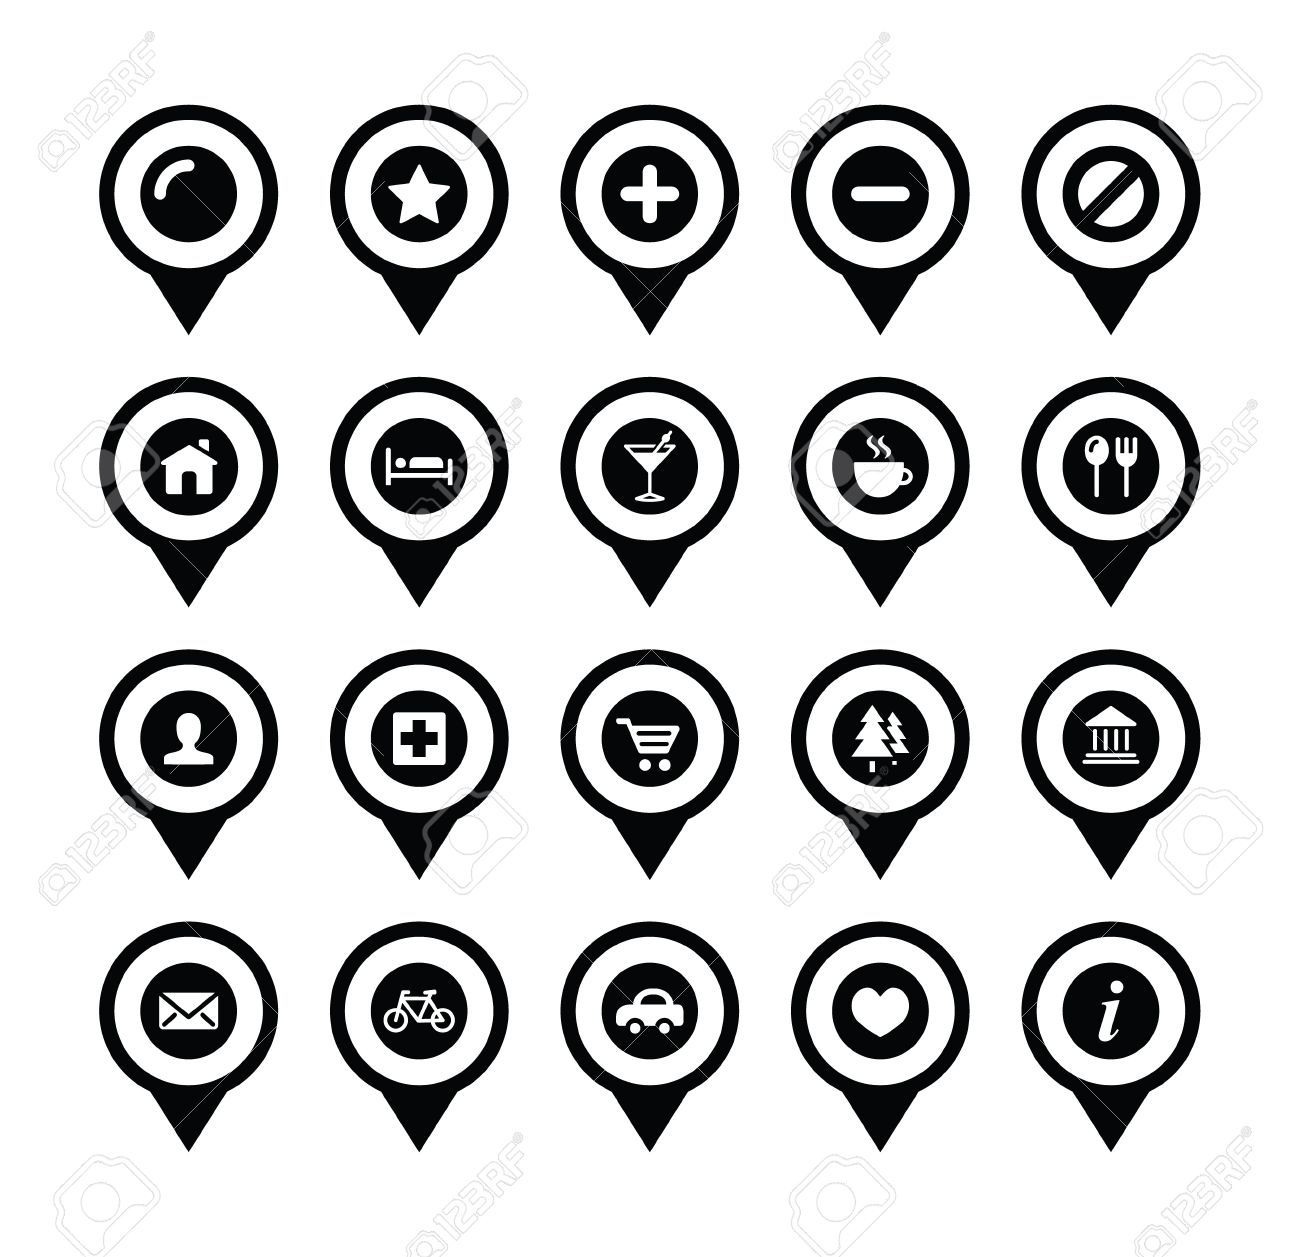 Map Location Markers, Pointers Vector Icons Set Royalty Free ...